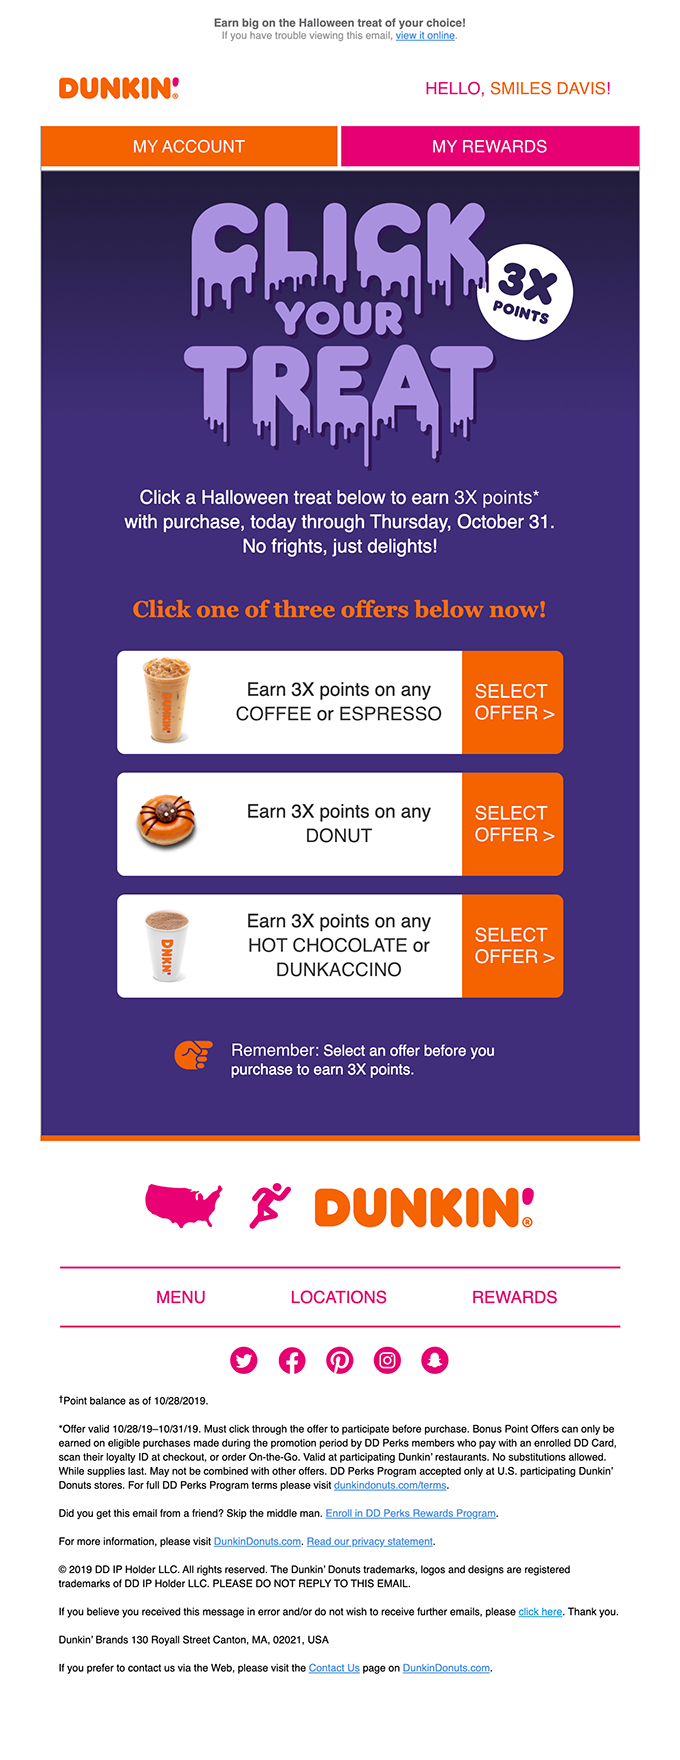 Click Your Treat and Earn 3X Points